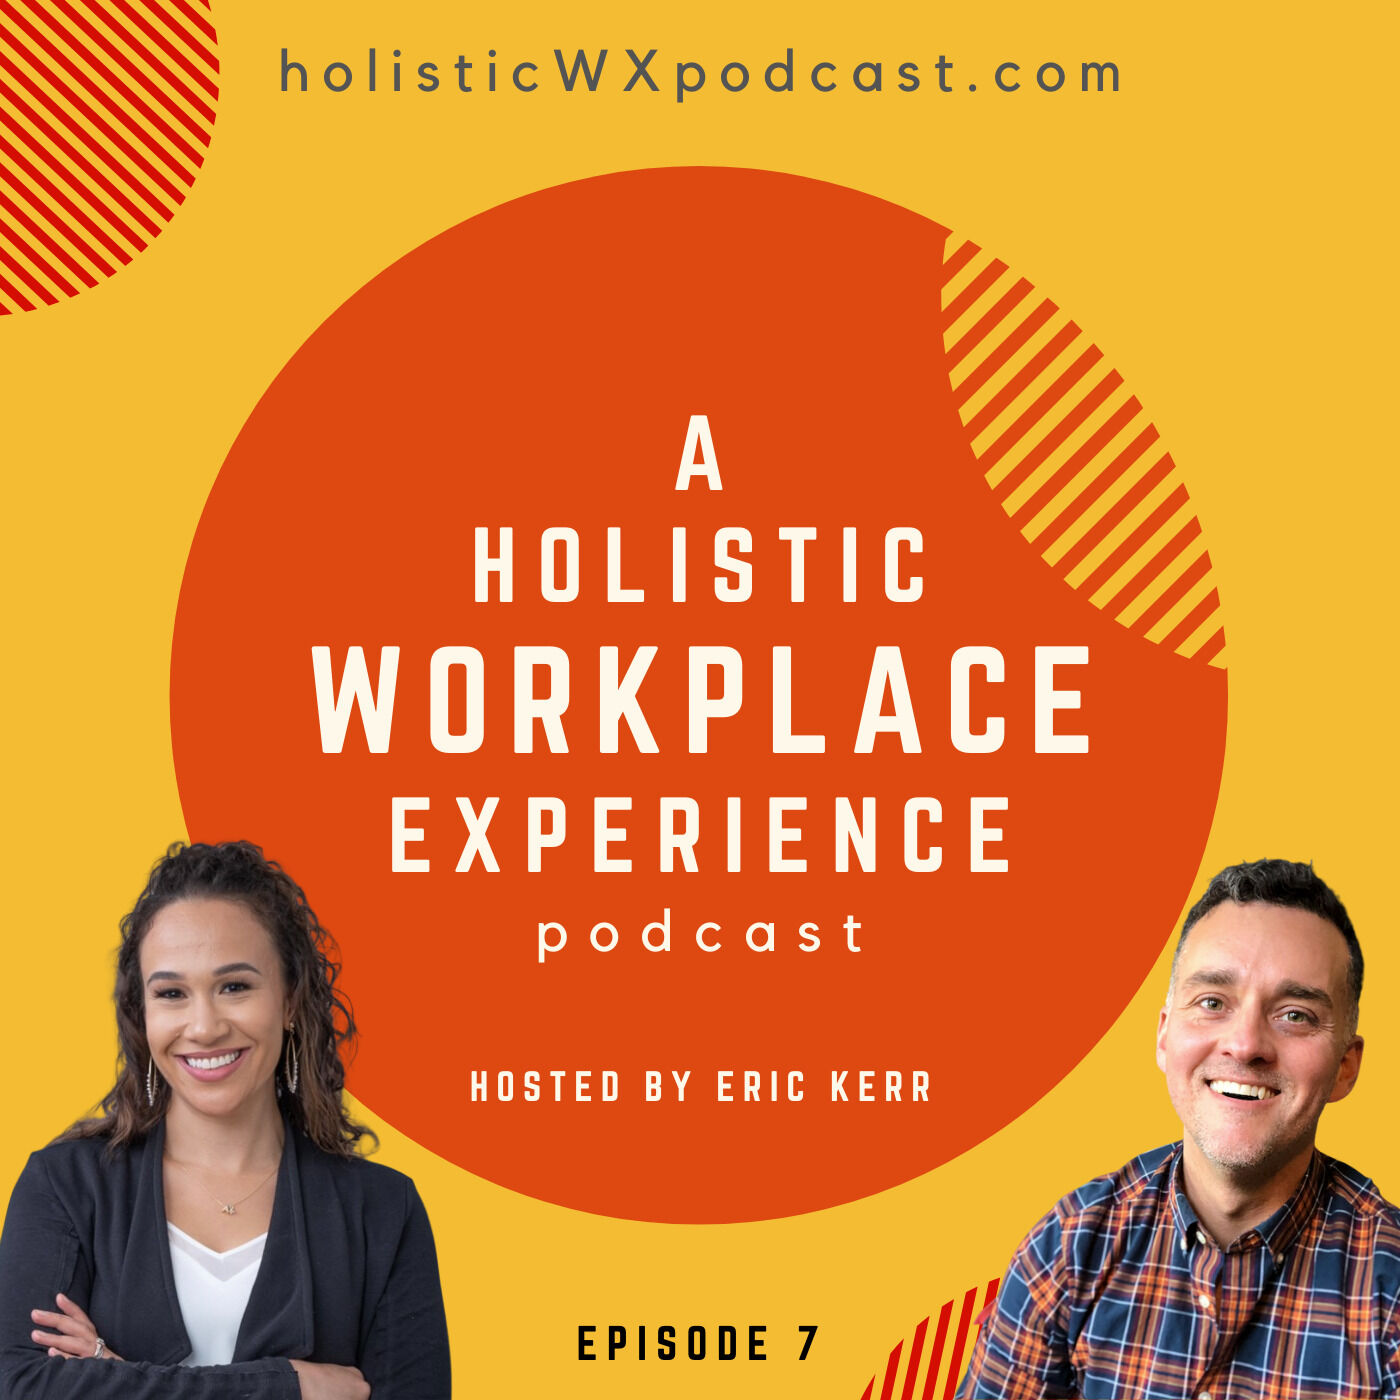 7. Well-Being and Belonging in the Hybrid Workplace (Guest: Angela Howard)